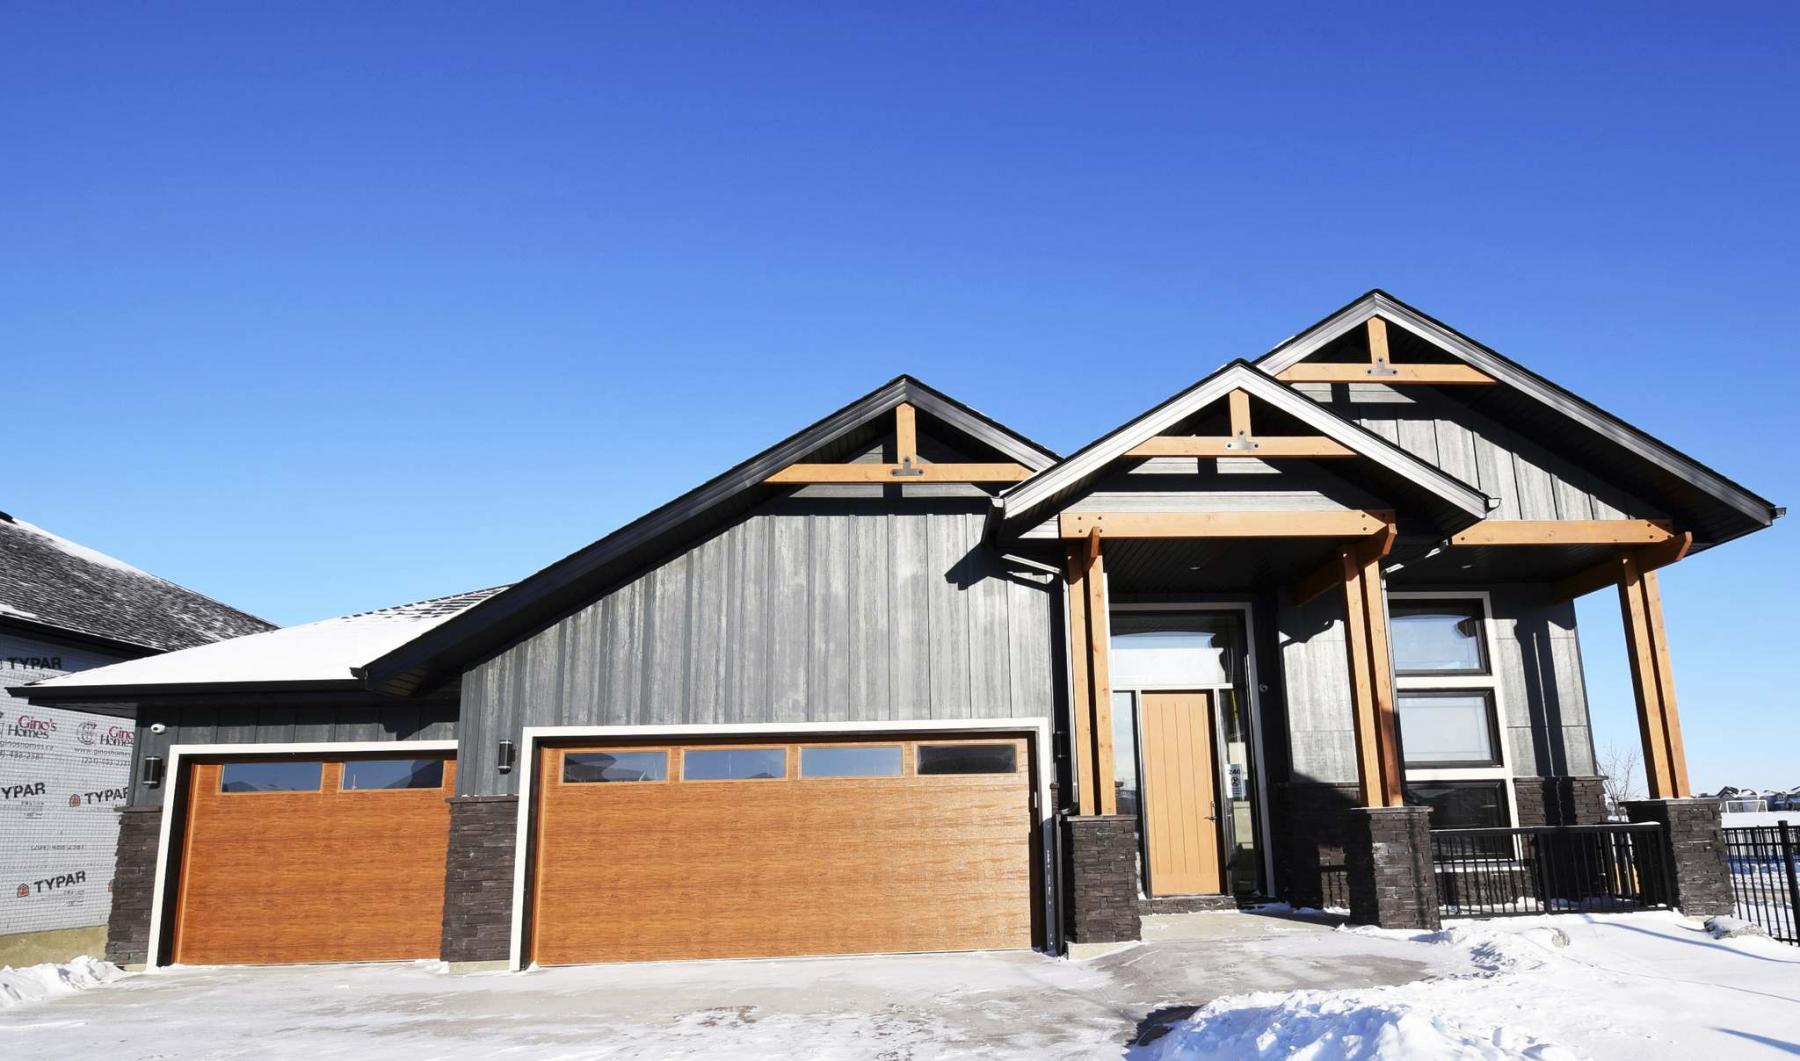 <p>Todd Lewys / Winnipeg Free Press files</p><p>122 new show homes will be on display during the Manitoba Home Builders' Association's 2020 Spring Parade of Homes. </p>